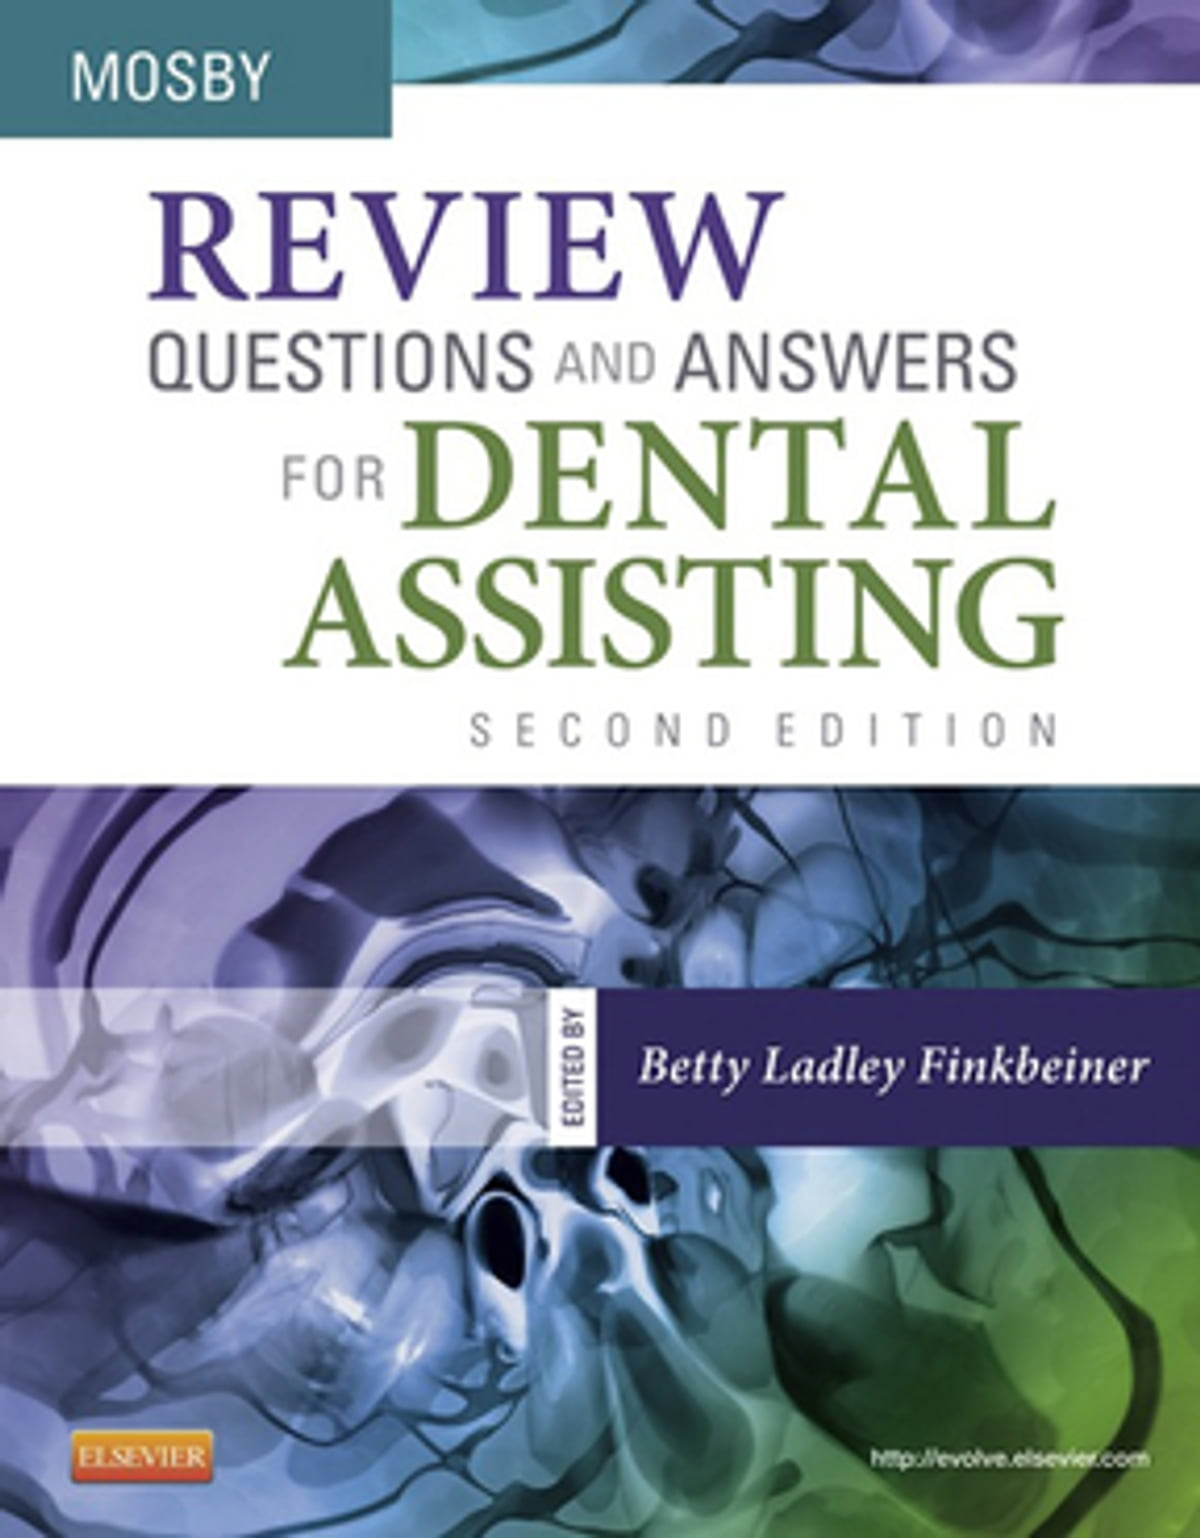 Review Questions And Answers For Dental Assisting E Book Ebook By Mosby Rakuten Kobo